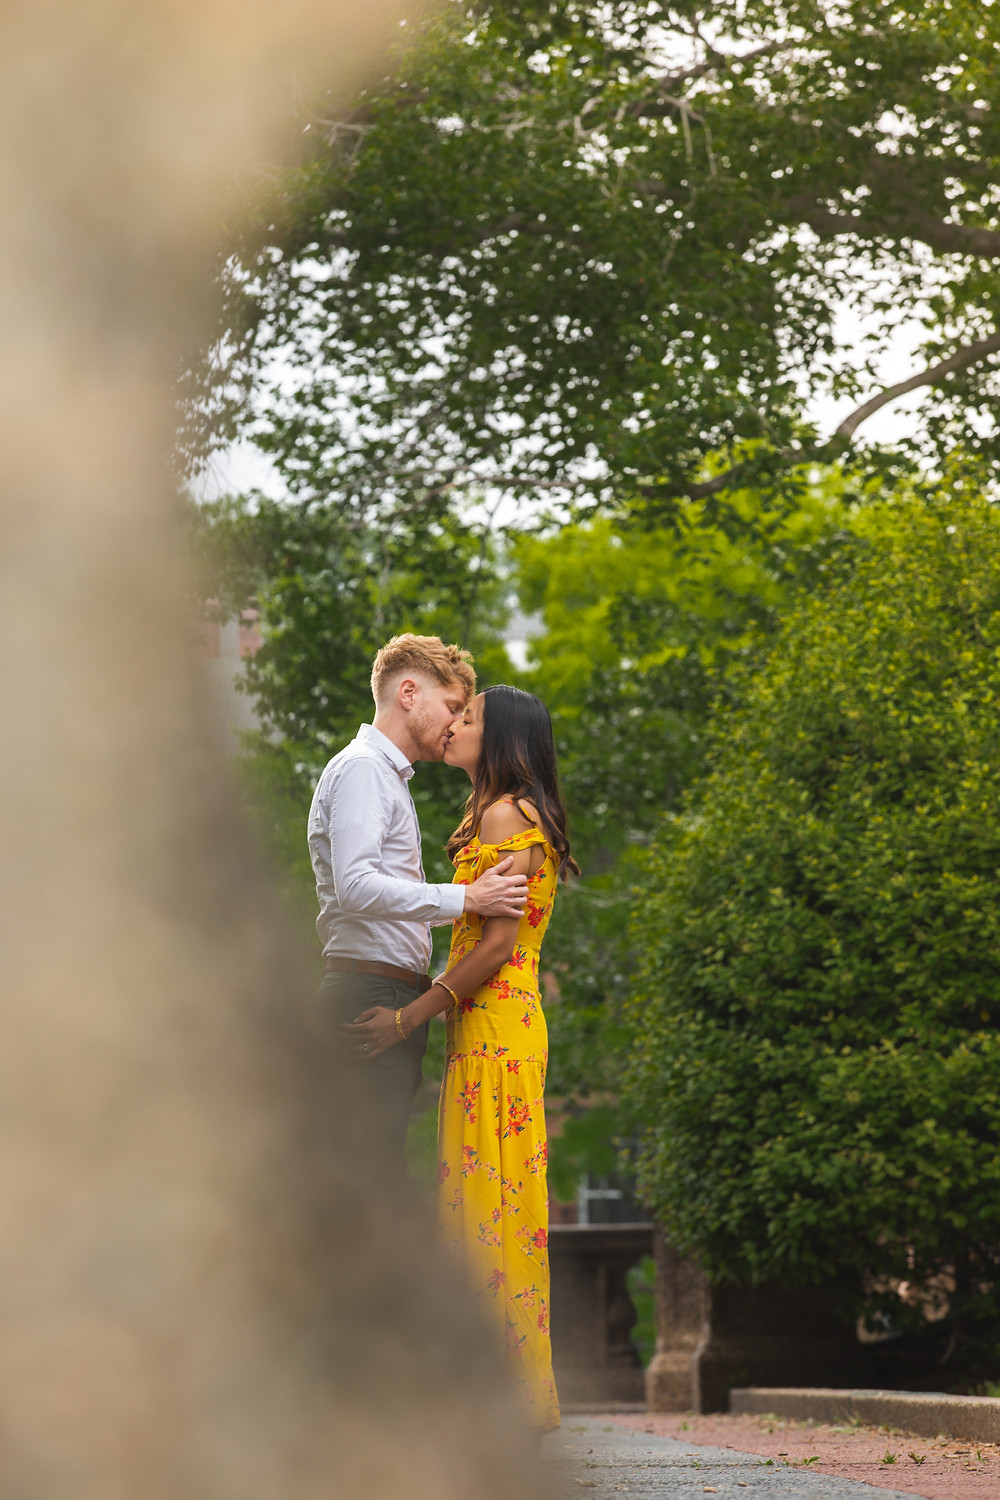 John and UK kiss during their engagement session at Meridian Hill Park in Washington DC.